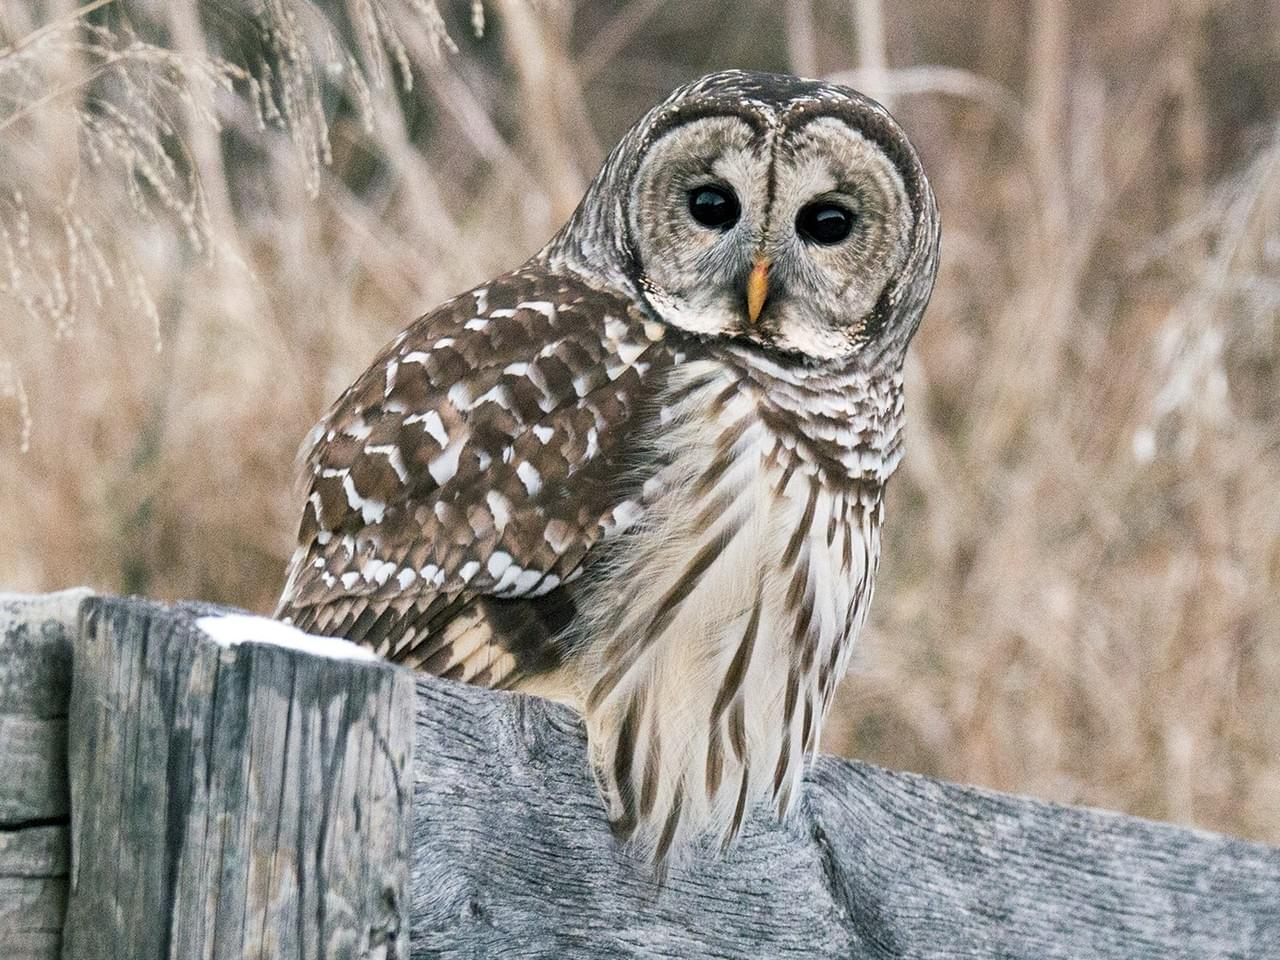 aab barred owl.jpg